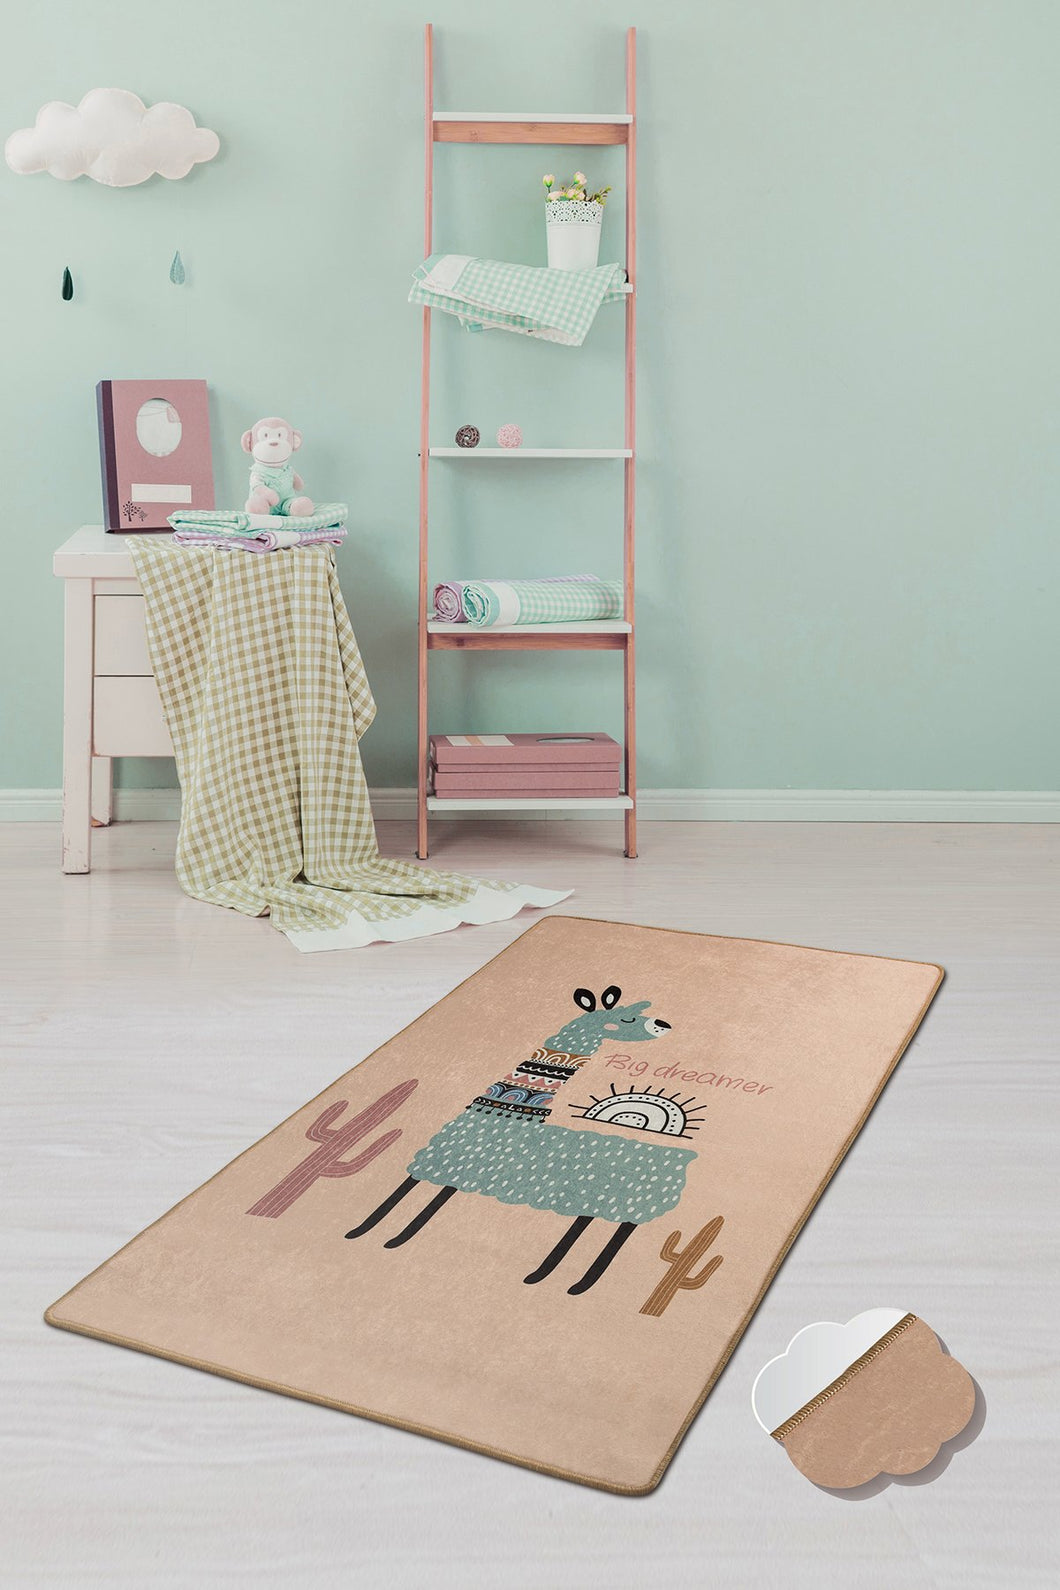 Antdecor Lama Rugs for kids Highway  3'x 5' 39